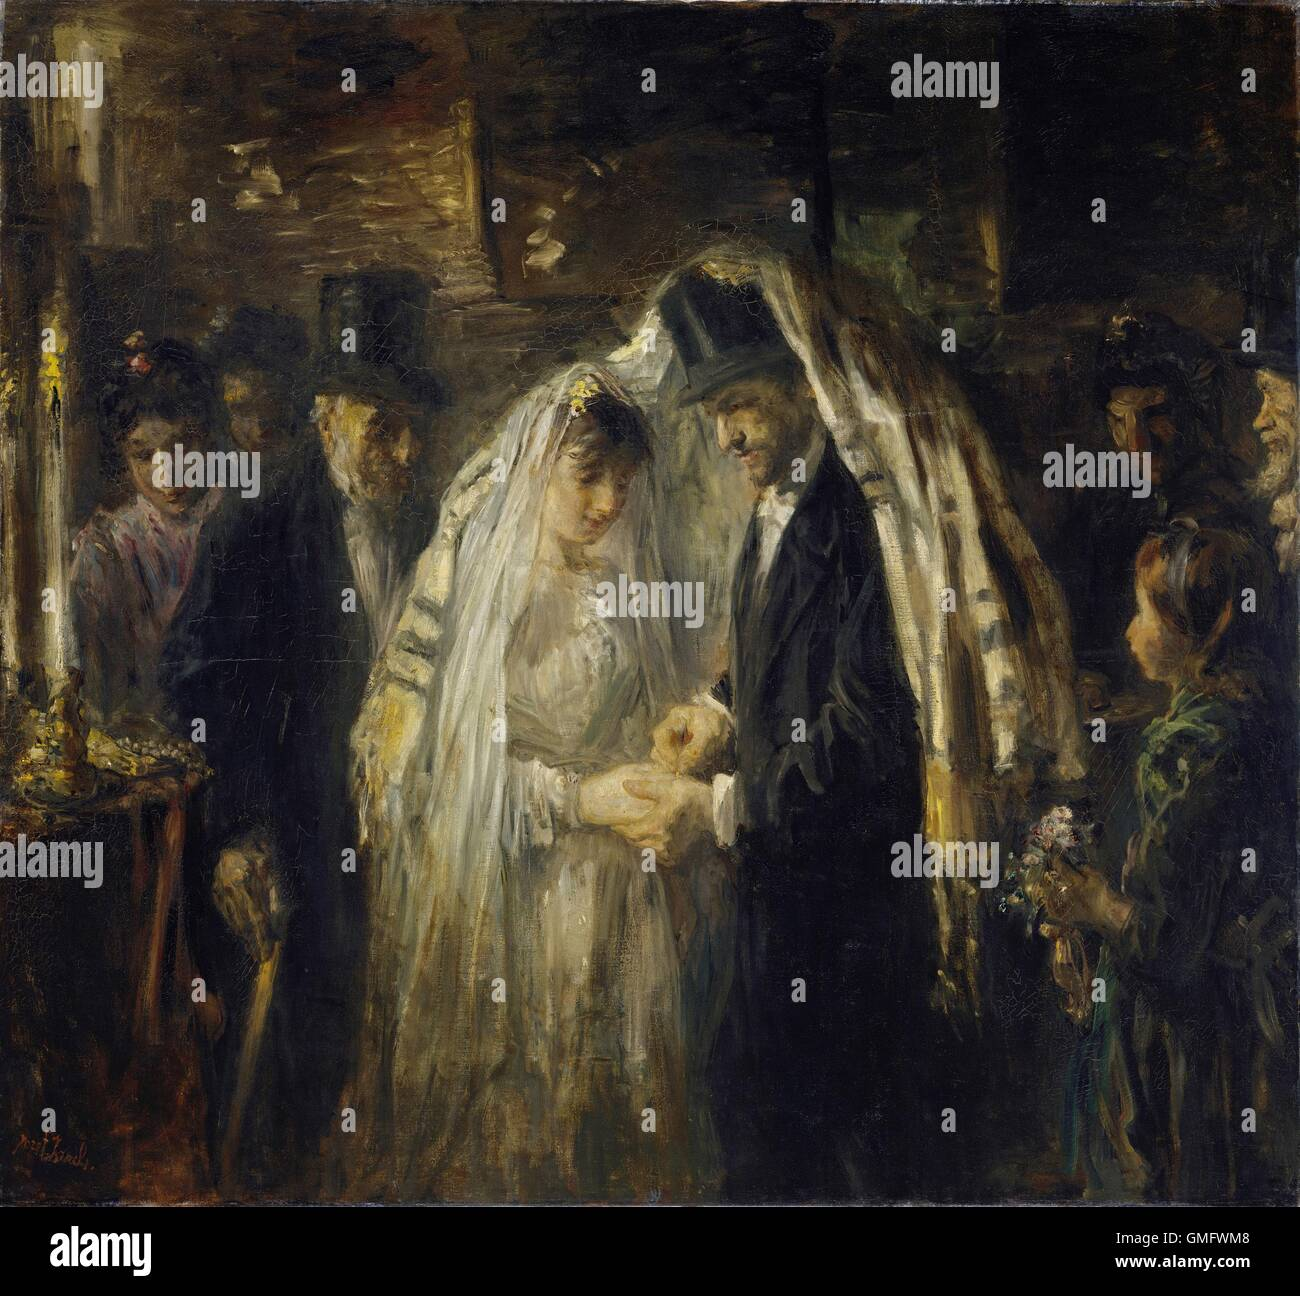 Jewish Wedding, by Jozef Israels, 1903, Dutch painting, oil on canvas. The bride and groom are under the prayer Stock Photo